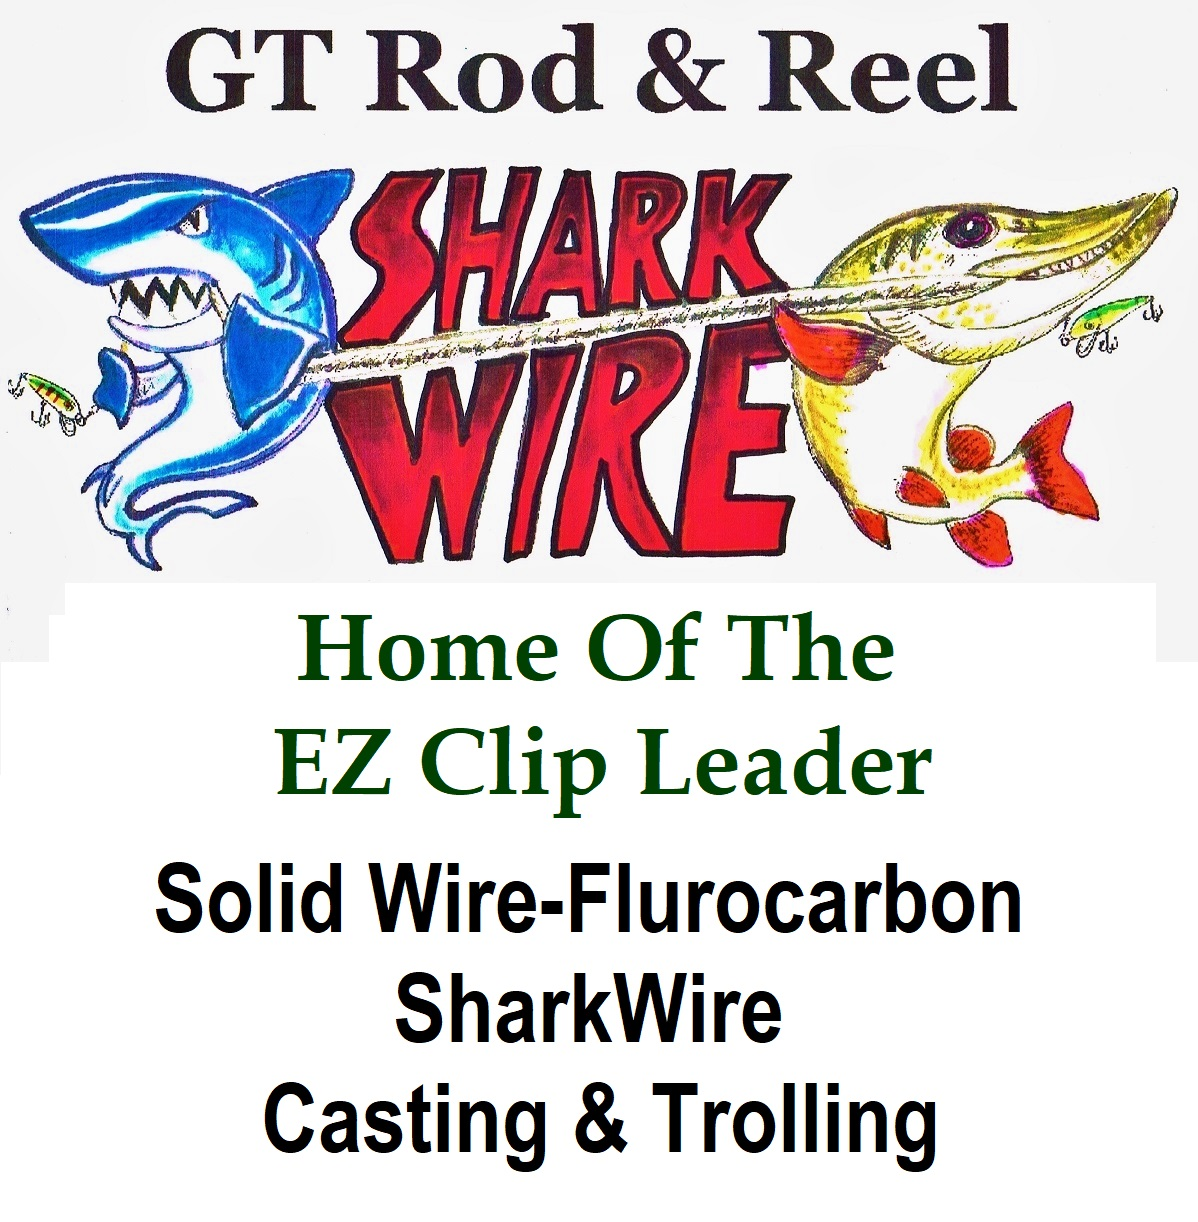 """The Reel Muskie Leader"" Home of the E-Z Clip Leader"